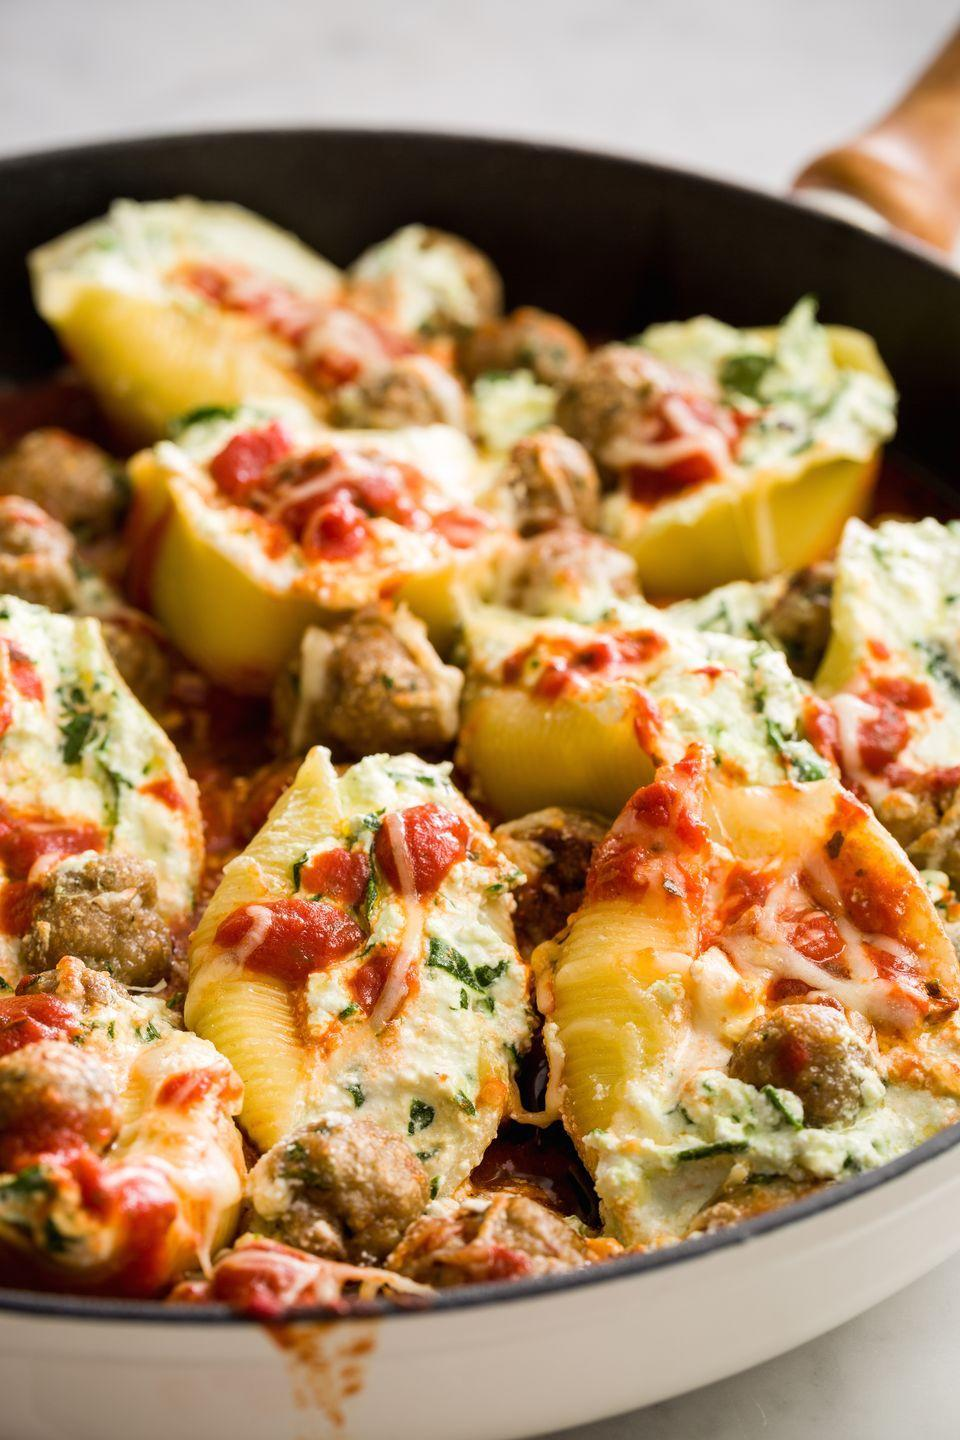 """<p>Mini turkey meatballs take these meaty shells to the next level.</p><p><span>Get the recipe from </span><a href=""""https://www.redbookmag.com/cooking/recipe-ideas/recipes/a45726/spinach-stuffed-shells-with-mini-turkey-meatballs-recipe/"""" rel=""""nofollow noopener"""" target=""""_blank"""" data-ylk=""""slk:Delish"""" class=""""link rapid-noclick-resp"""">Delish</a><span>.</span><br></p><p><span><strong><a class=""""link rapid-noclick-resp"""" href=""""https://www.amazon.com/Creuset-Signature-Handle-Skillet-4-Inch/dp/B00B4UOTBQ/?tag=syn-yahoo-20&ascsubtag=%5Bartid%7C10063.g.34933194%5Bsrc%7Cyahoo-us"""" rel=""""nofollow noopener"""" target=""""_blank"""" data-ylk=""""slk:BUY NOW"""">BUY NOW</a><em> Le Creuset Cast-Iron 12"""" Skillet, $200, amazon.com</em></strong><br></span></p>"""